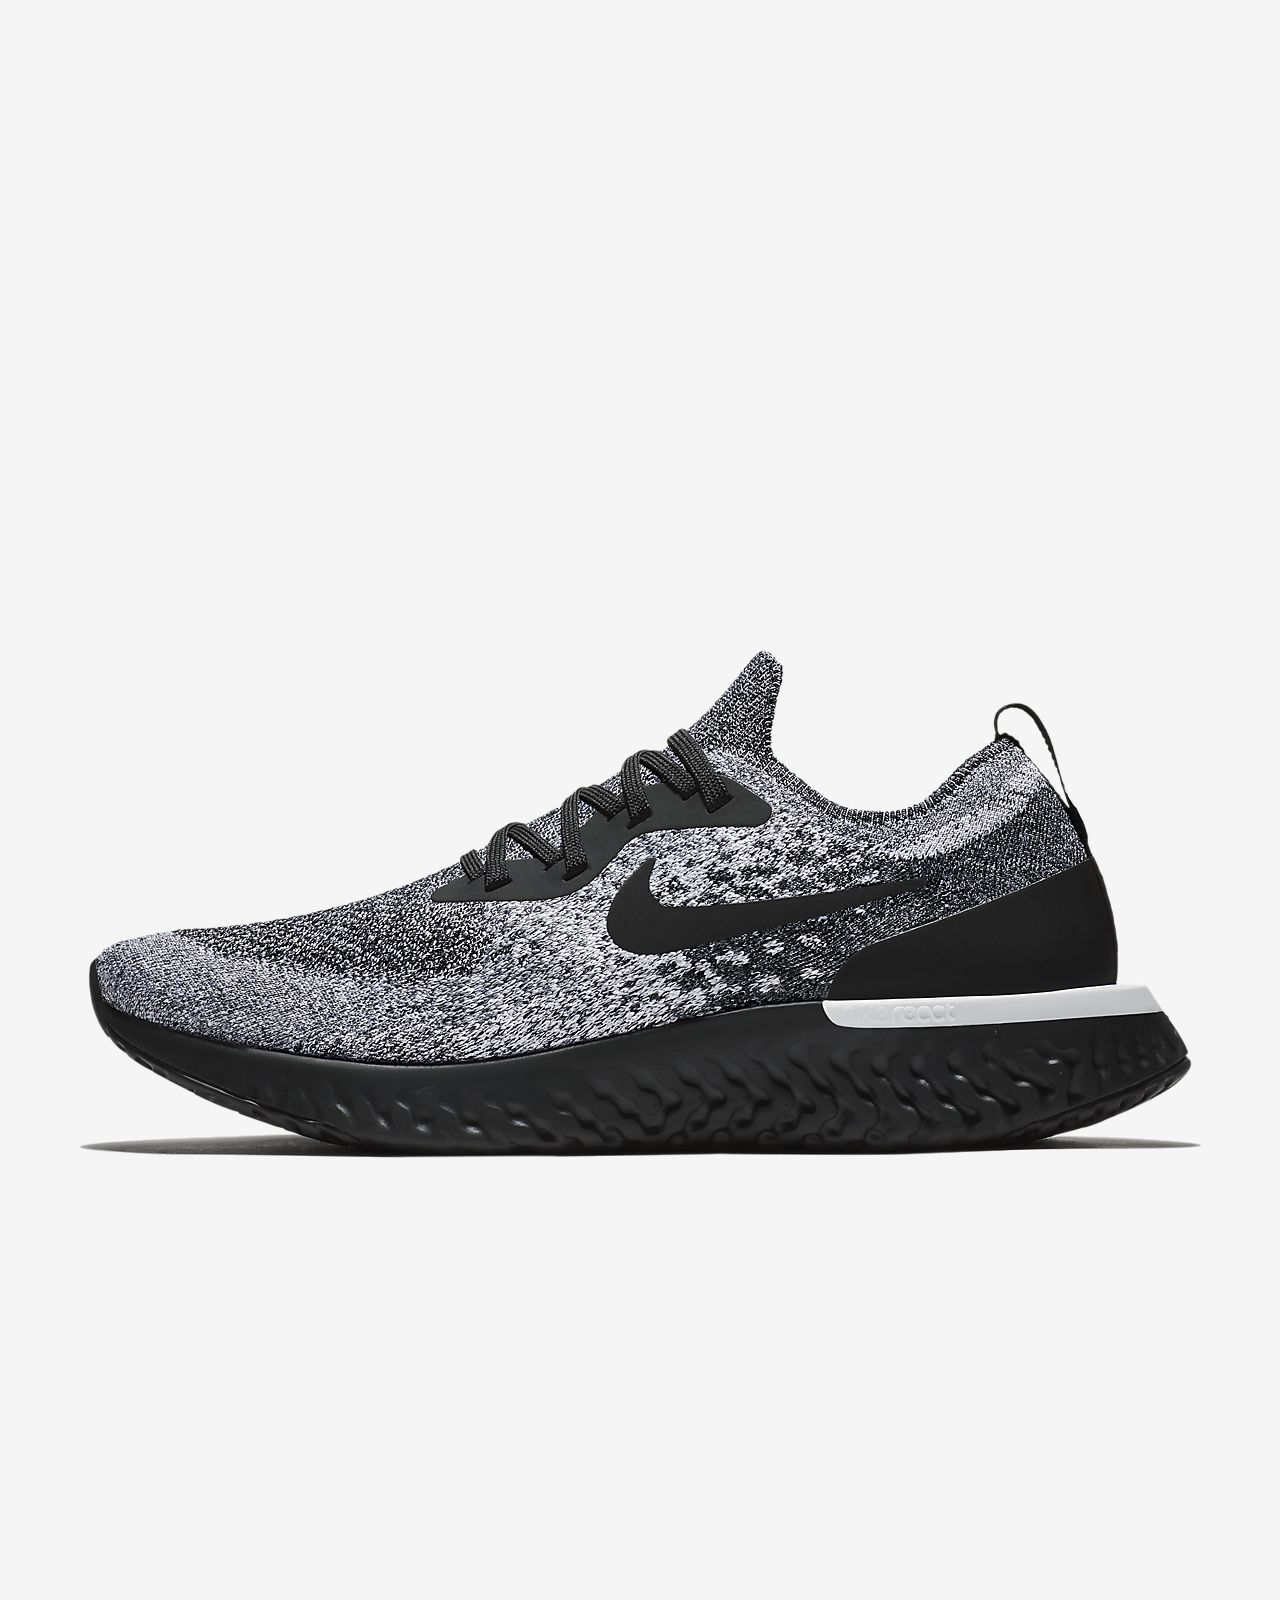 new product d99da 32187 Men s Running Shoe. Nike Epic React Flyknit